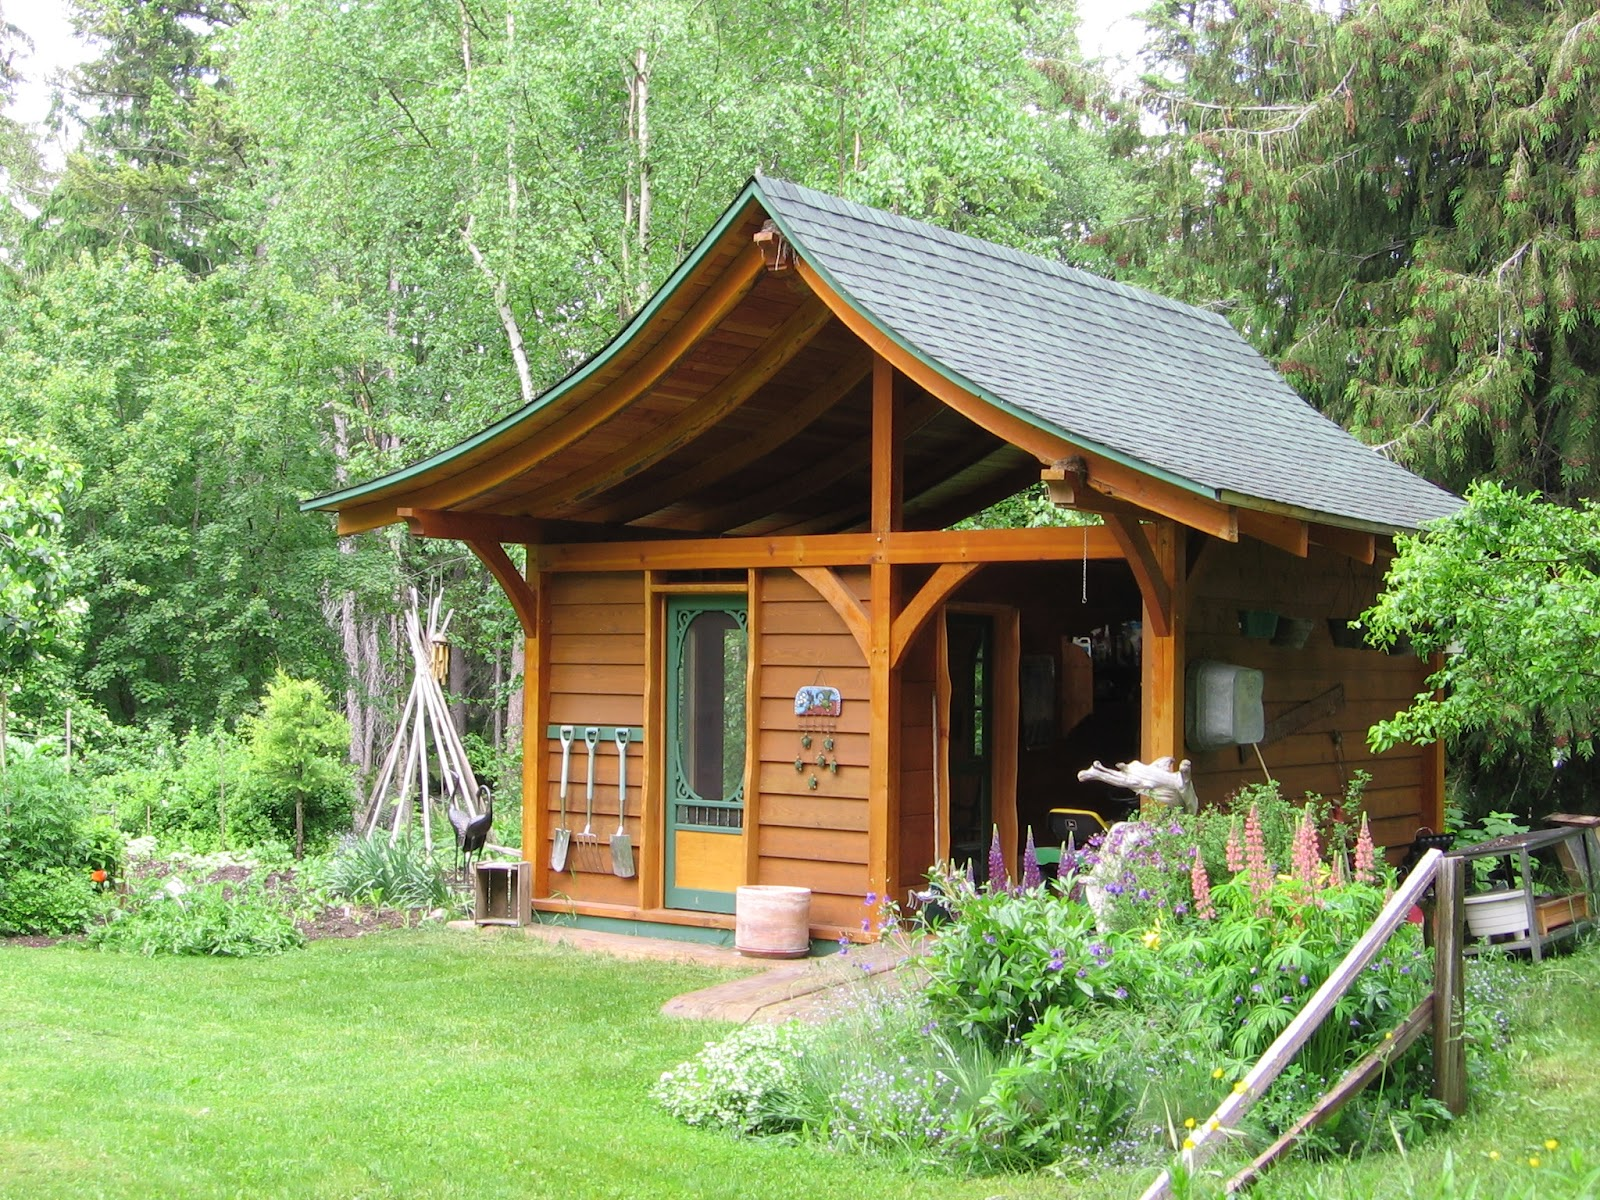 Fairytale backyards 30 magical garden sheds for Garden building design ideas